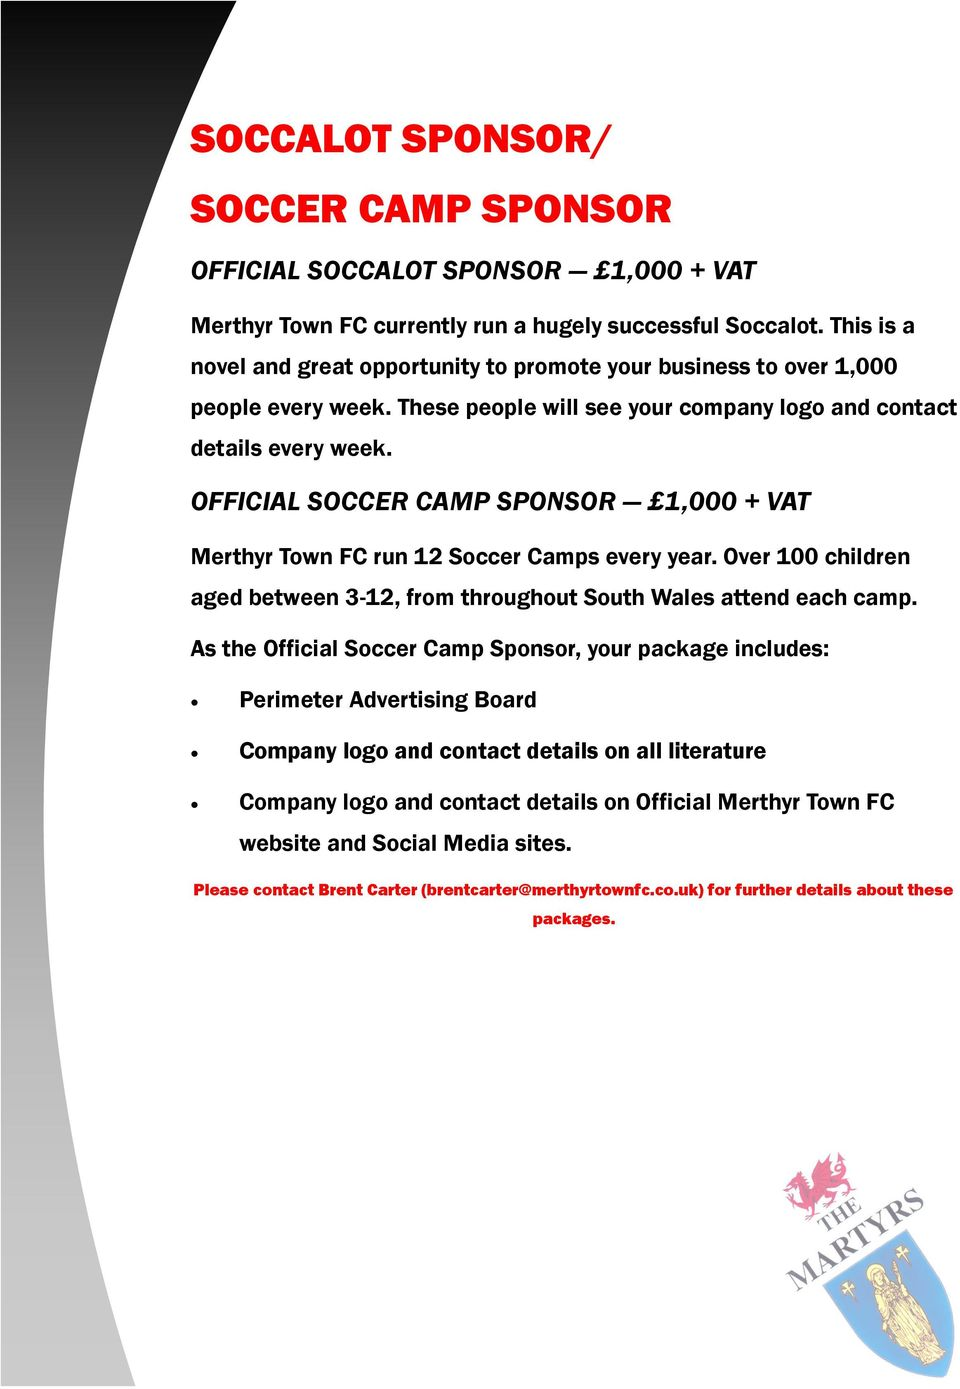 OFFICIAL SOCCER CAMP SPONSOR 1,000 + VAT Merthyr Town FC run 12 Soccer Camps every year. Over 100 children aged between 3-12, from throughout South Wales attend each camp.